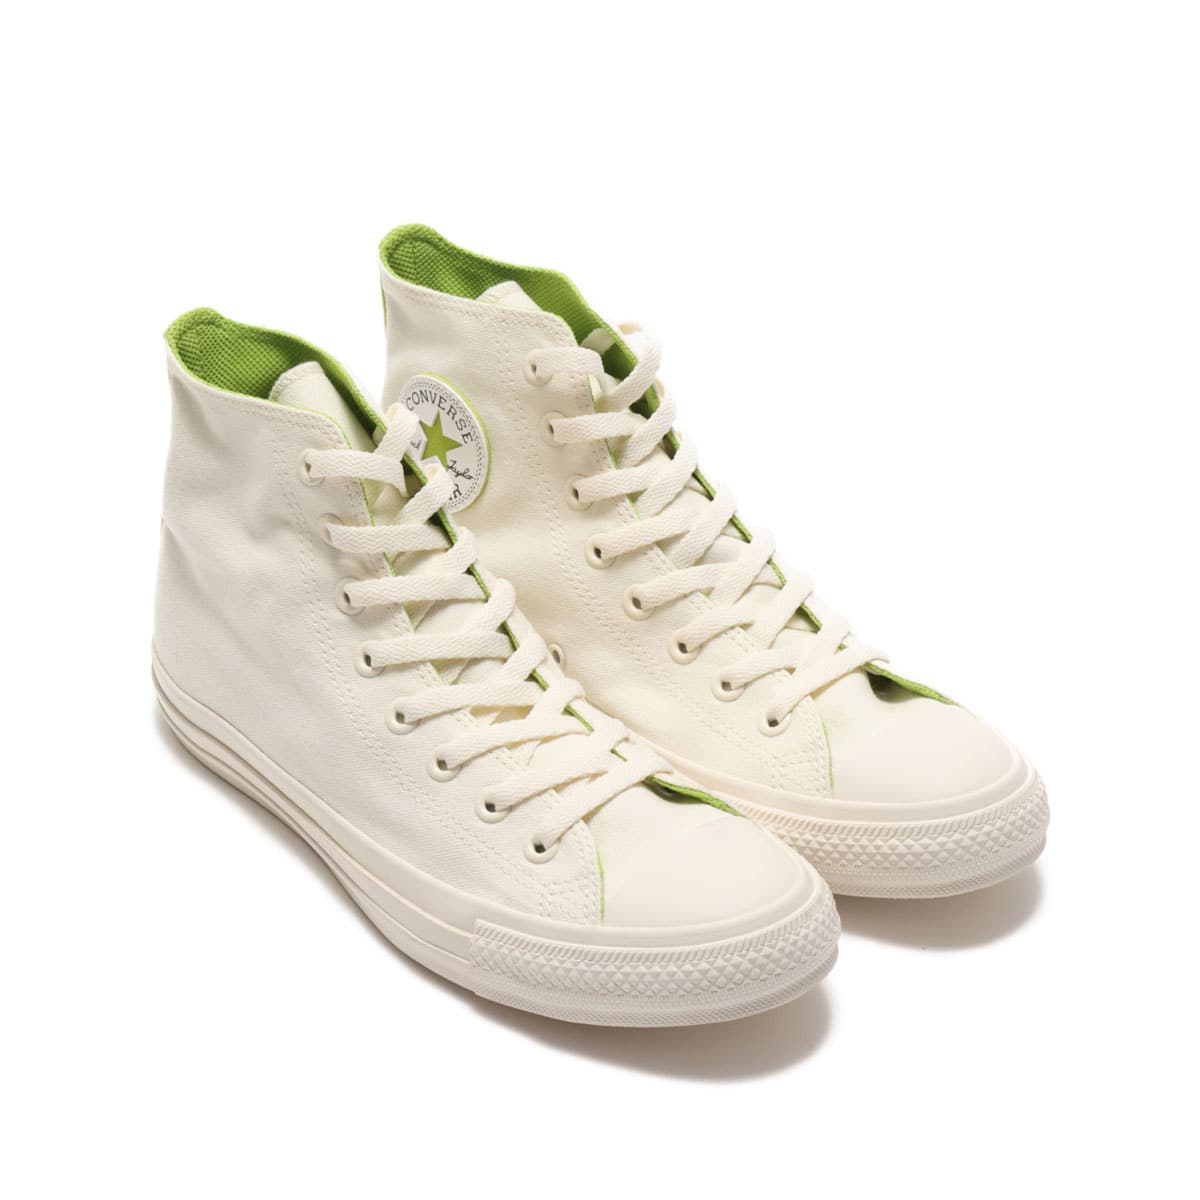 CONVERSE ALL STAR COSMOINWHITE HI WHITE 21SS-I_photo_large